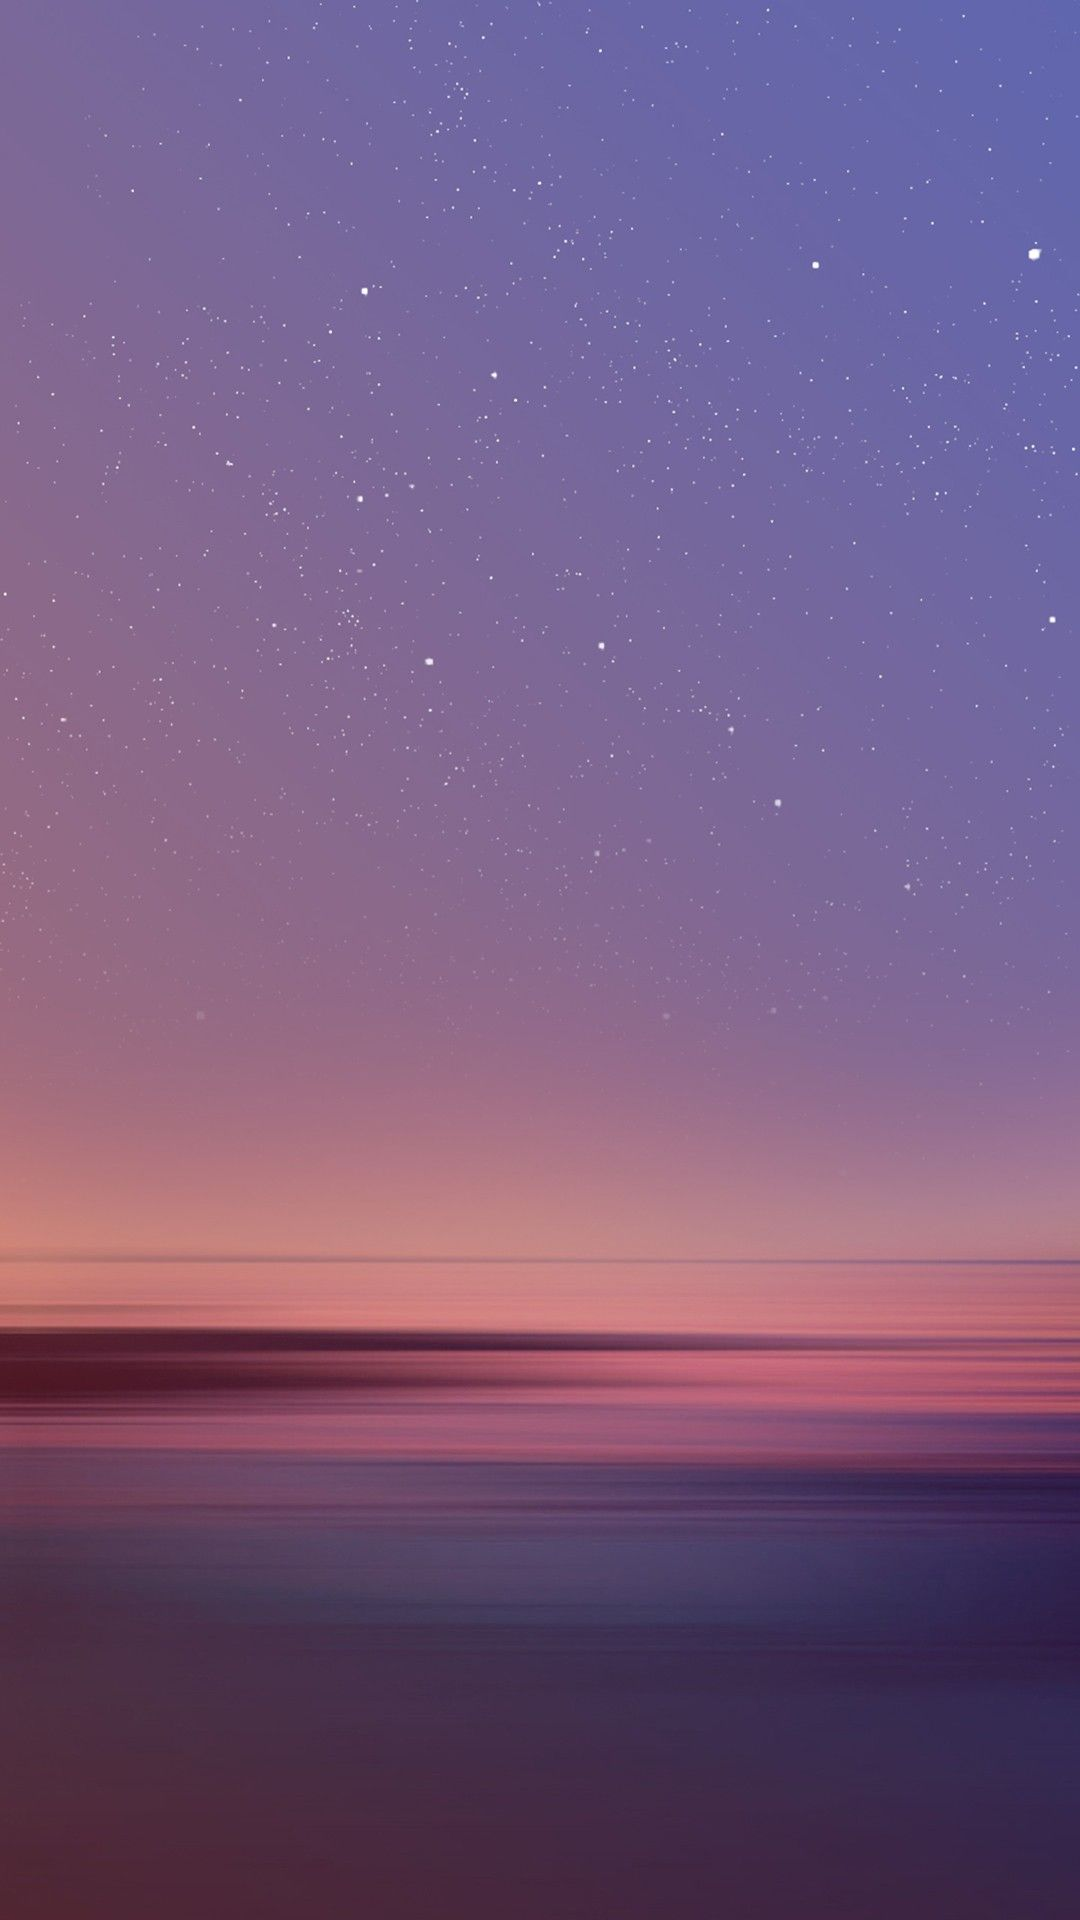 Starflight stars coming out in a serene twilight sky - Twilight wallpaper for iphone ...